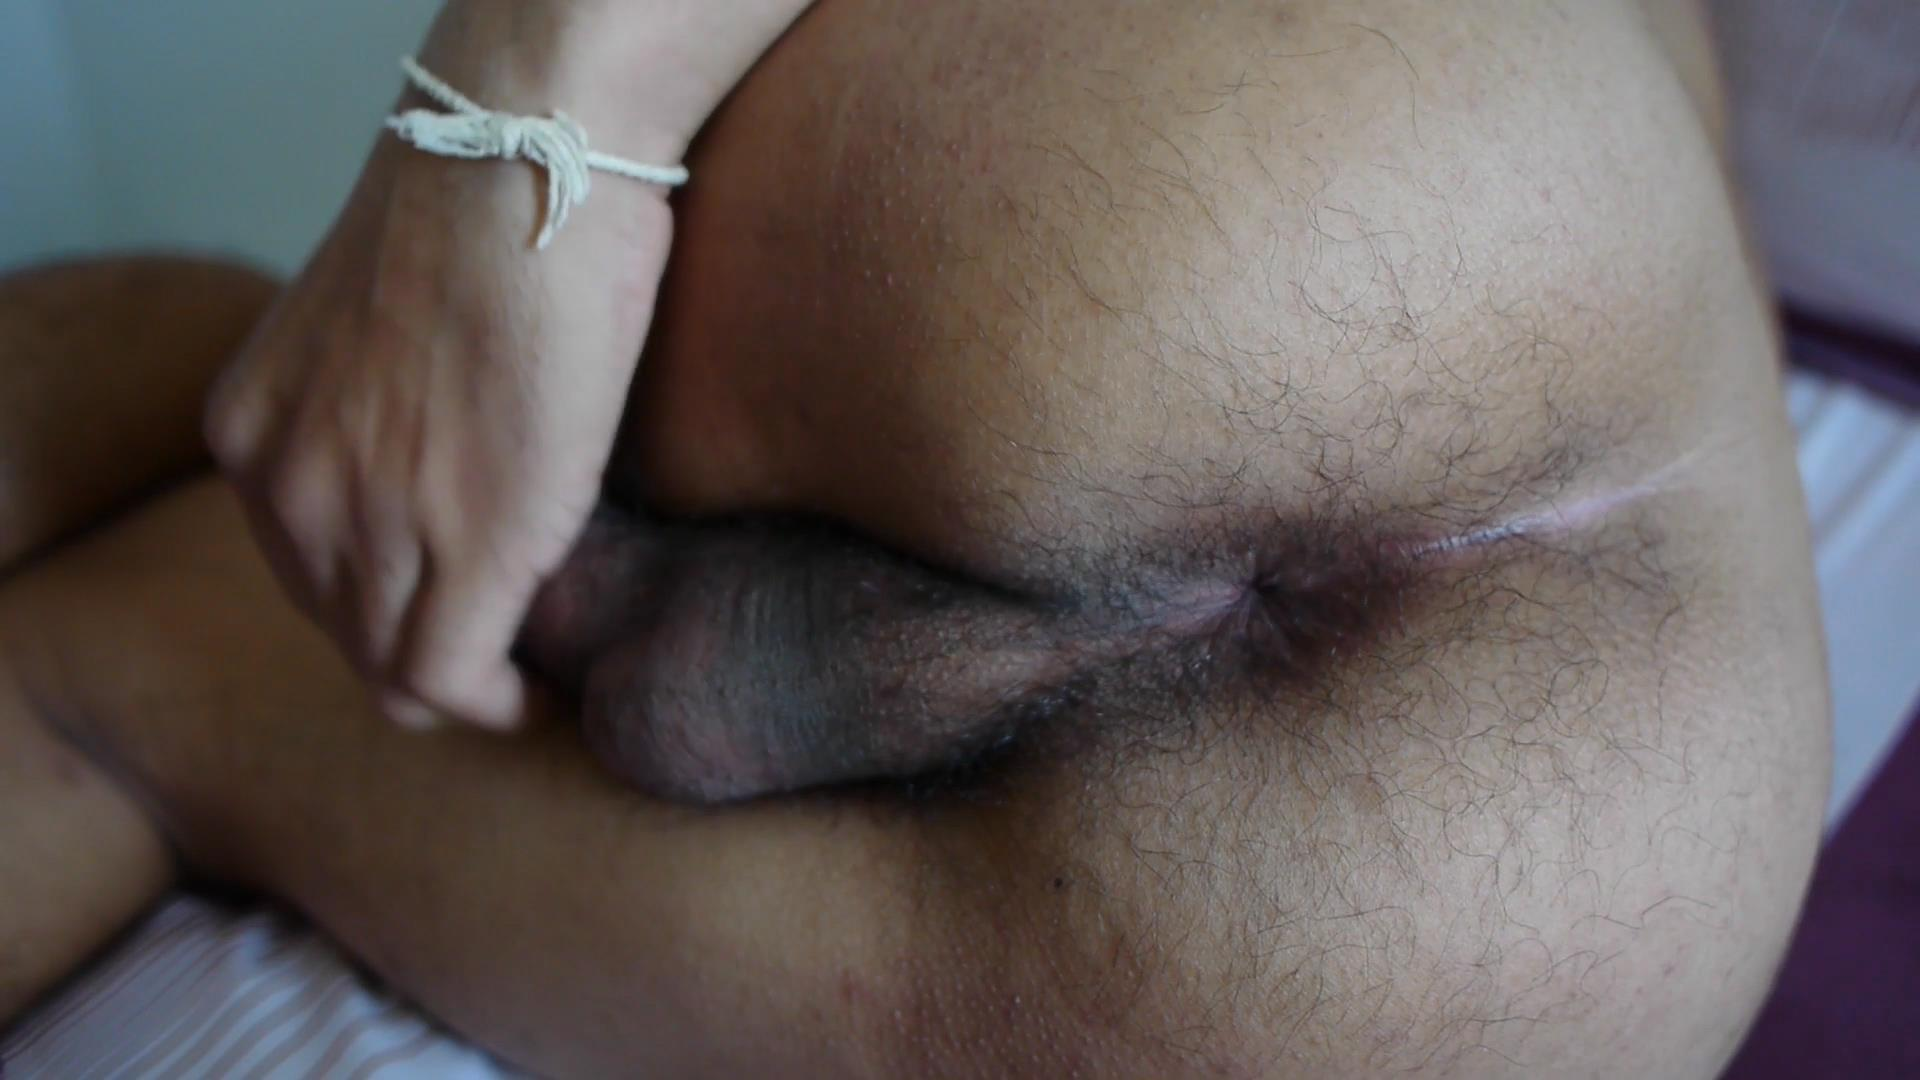 Asia-Boy-Kai-Asian-Twink-Jerking-Big-Uncut-Cock-Amateur-Gay-Porn-17 Asian Boy Kai Jerking His Big Uncut Asian Dick And Fingering His Ass